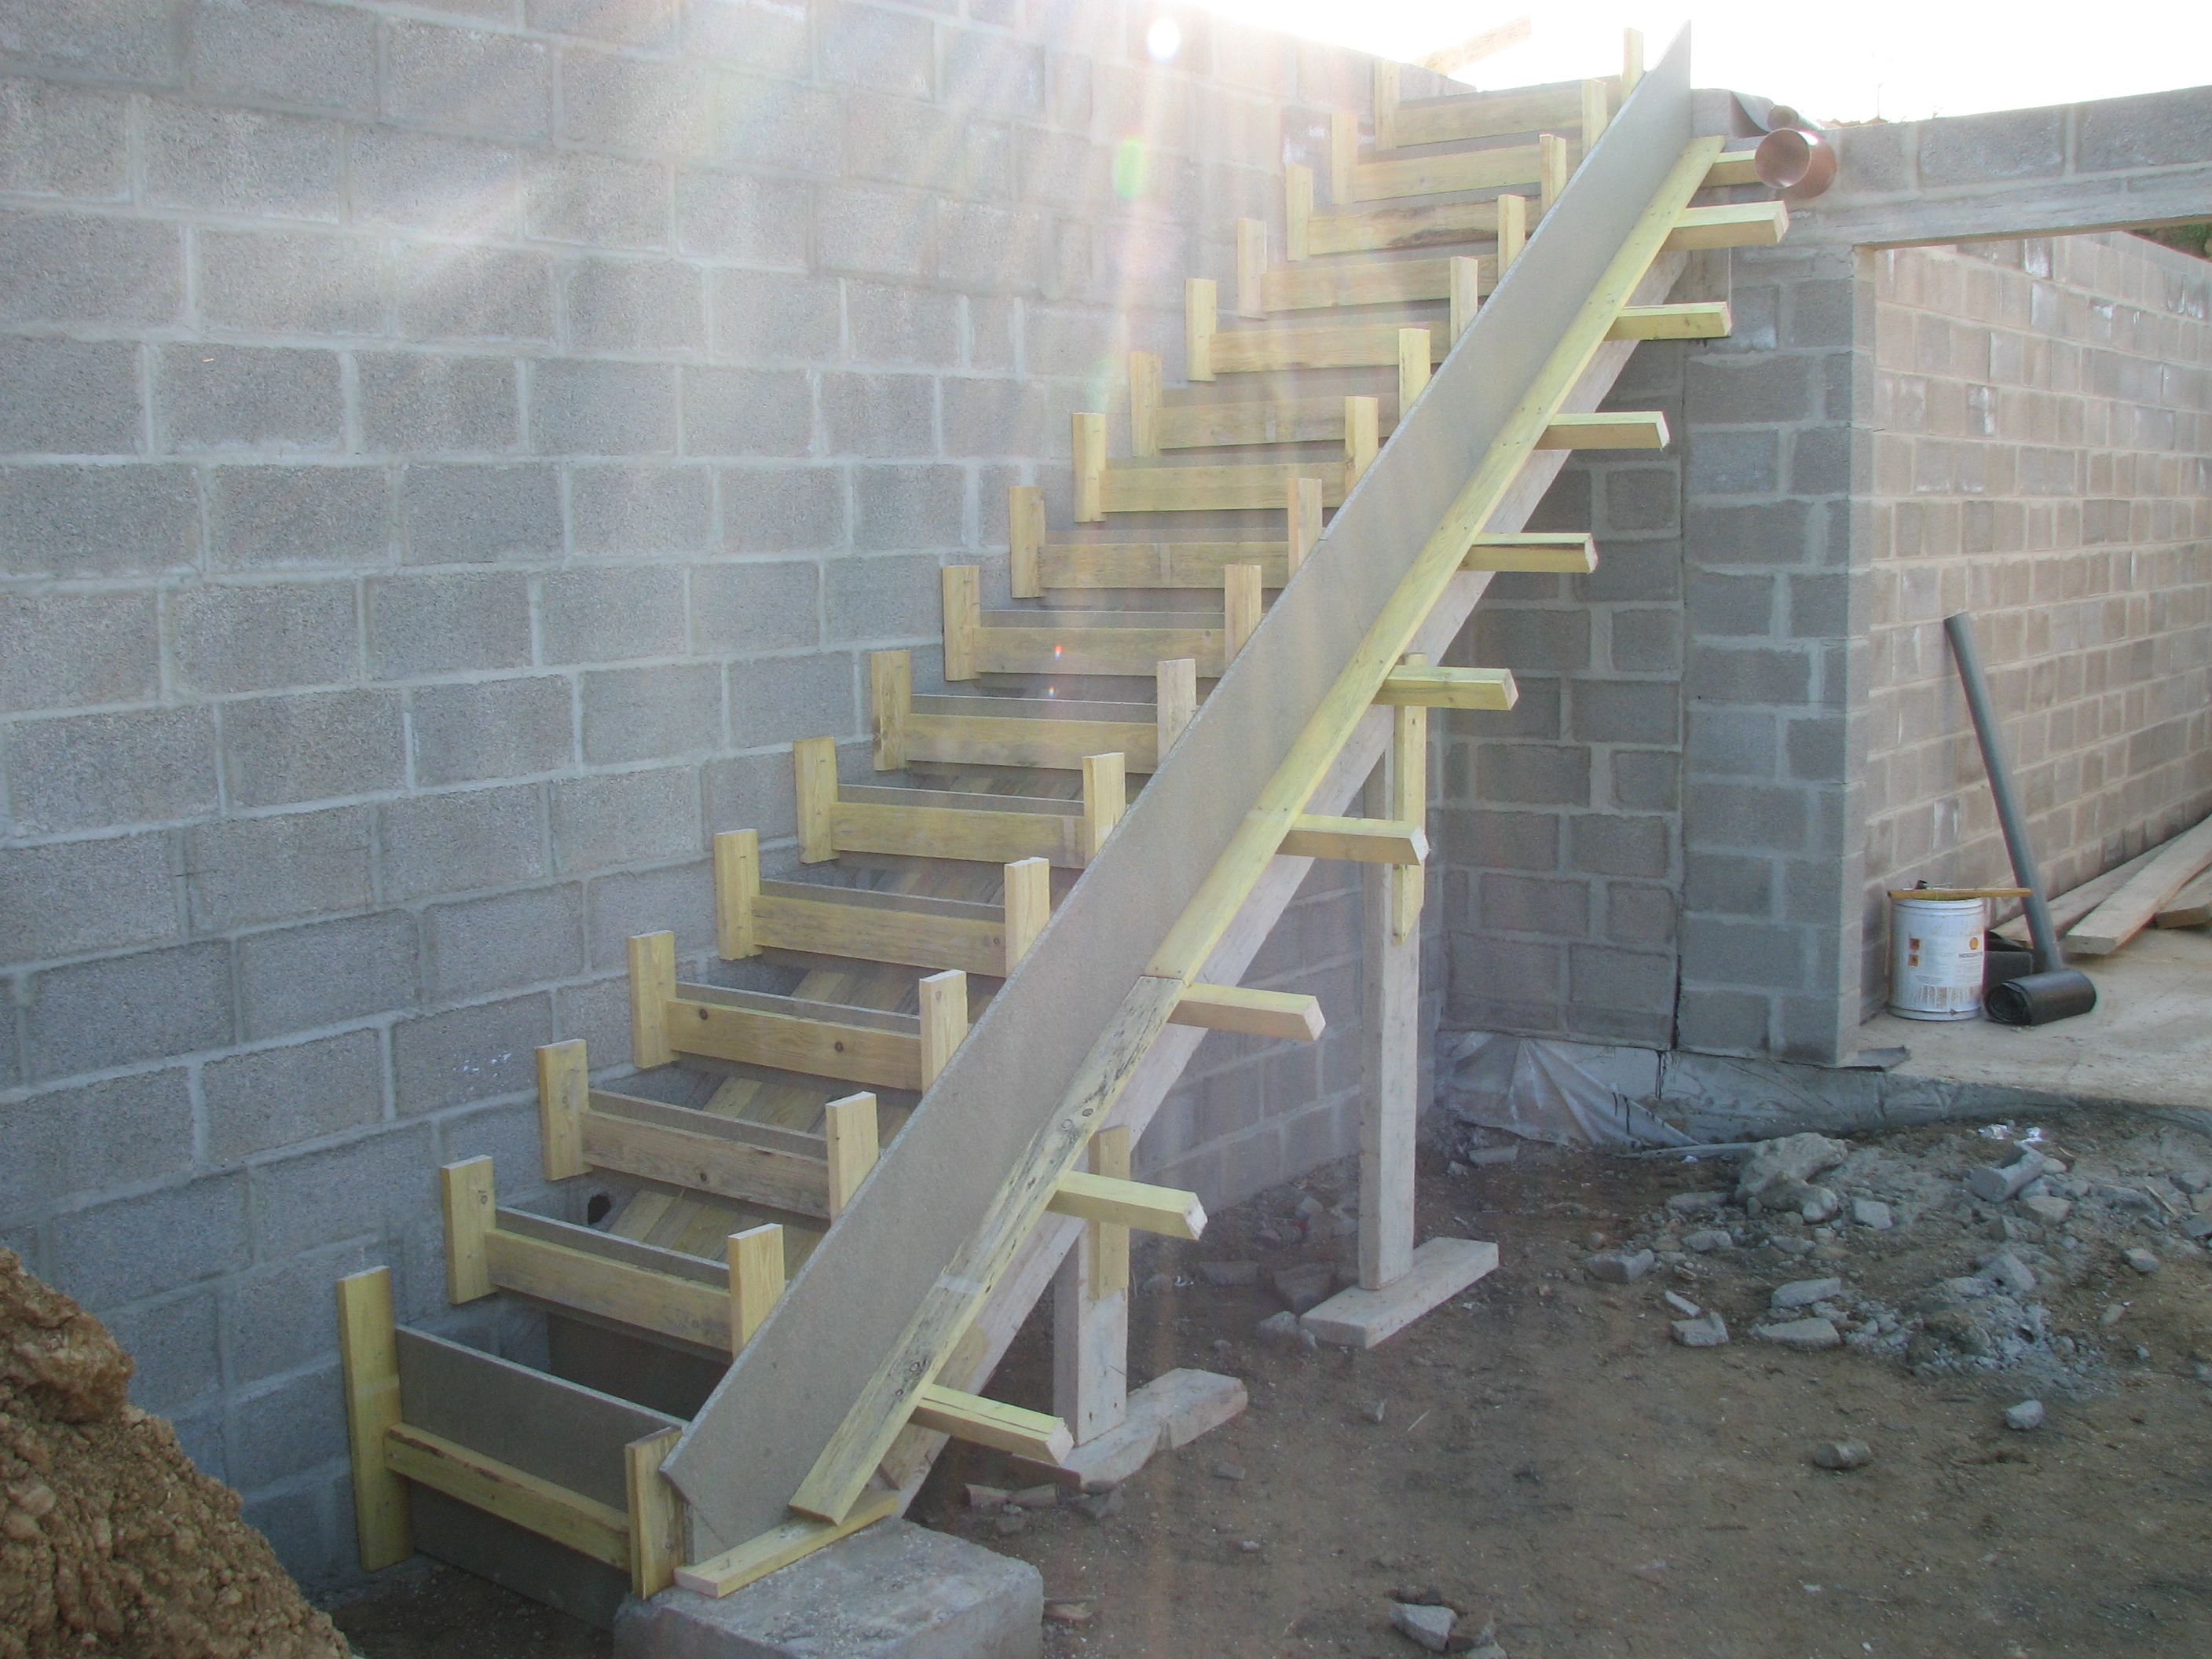 Afficher l 39 image d 39 origine coffrage pinterest for Construire un escalier en beton exterieur